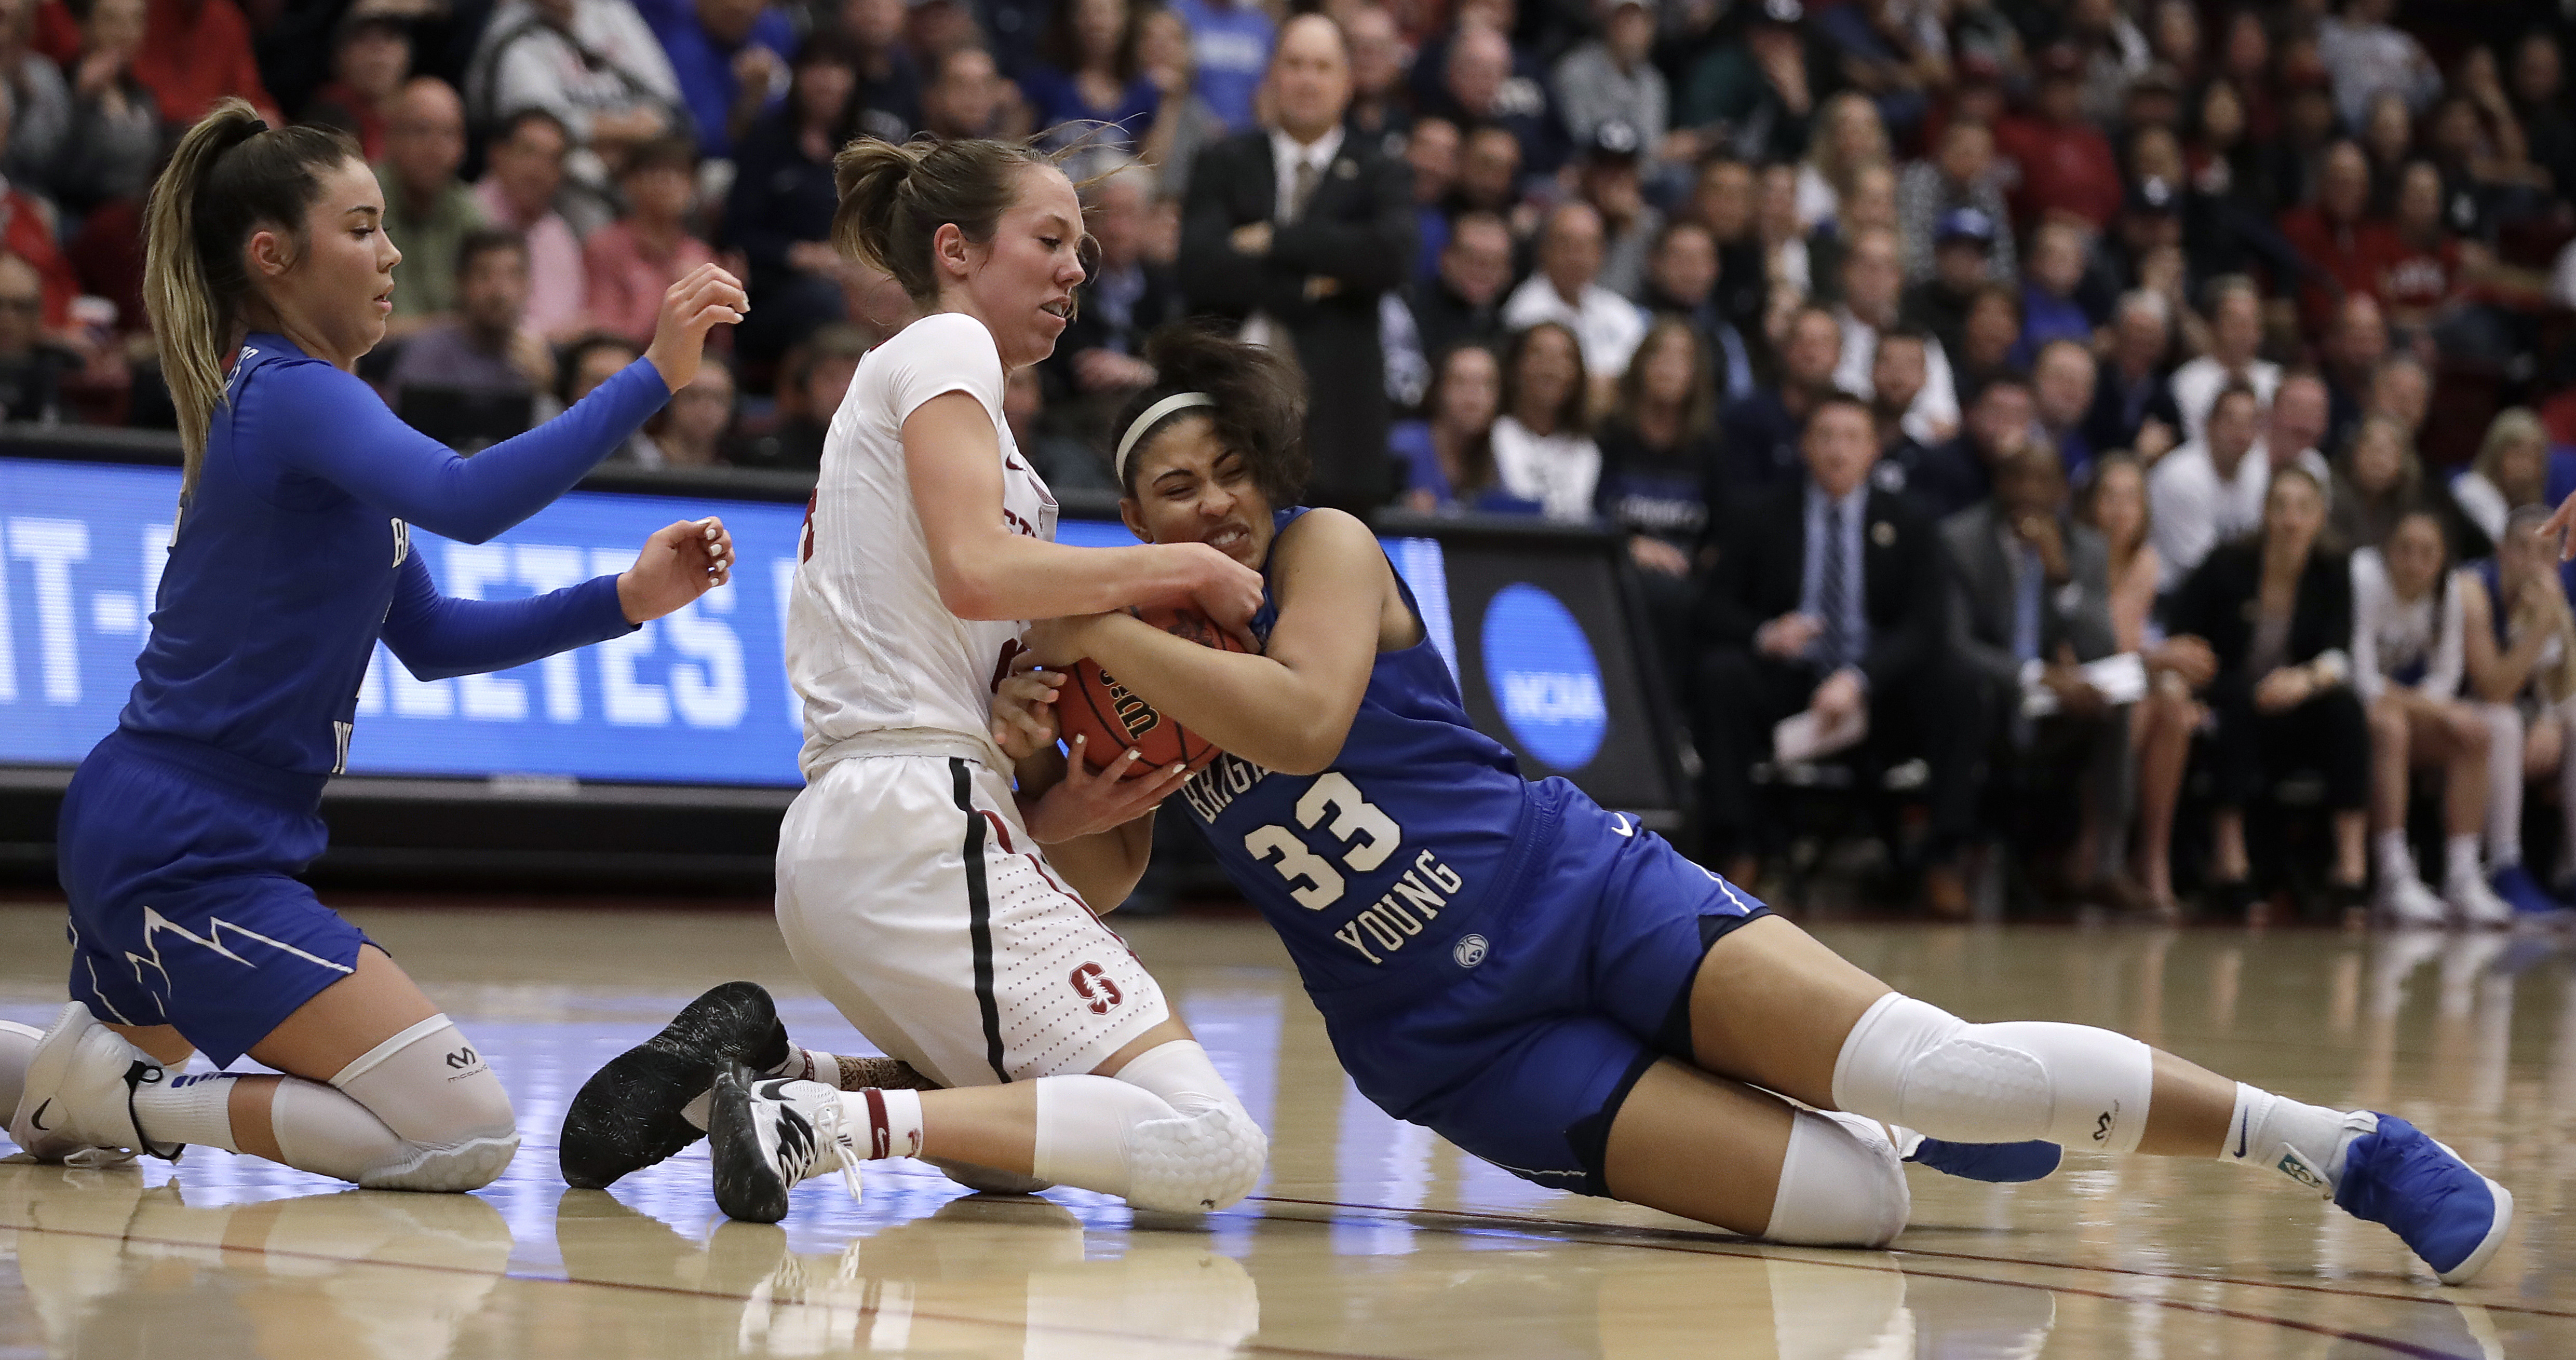 Smith heats up in second half, Stanford back to Sweet 16